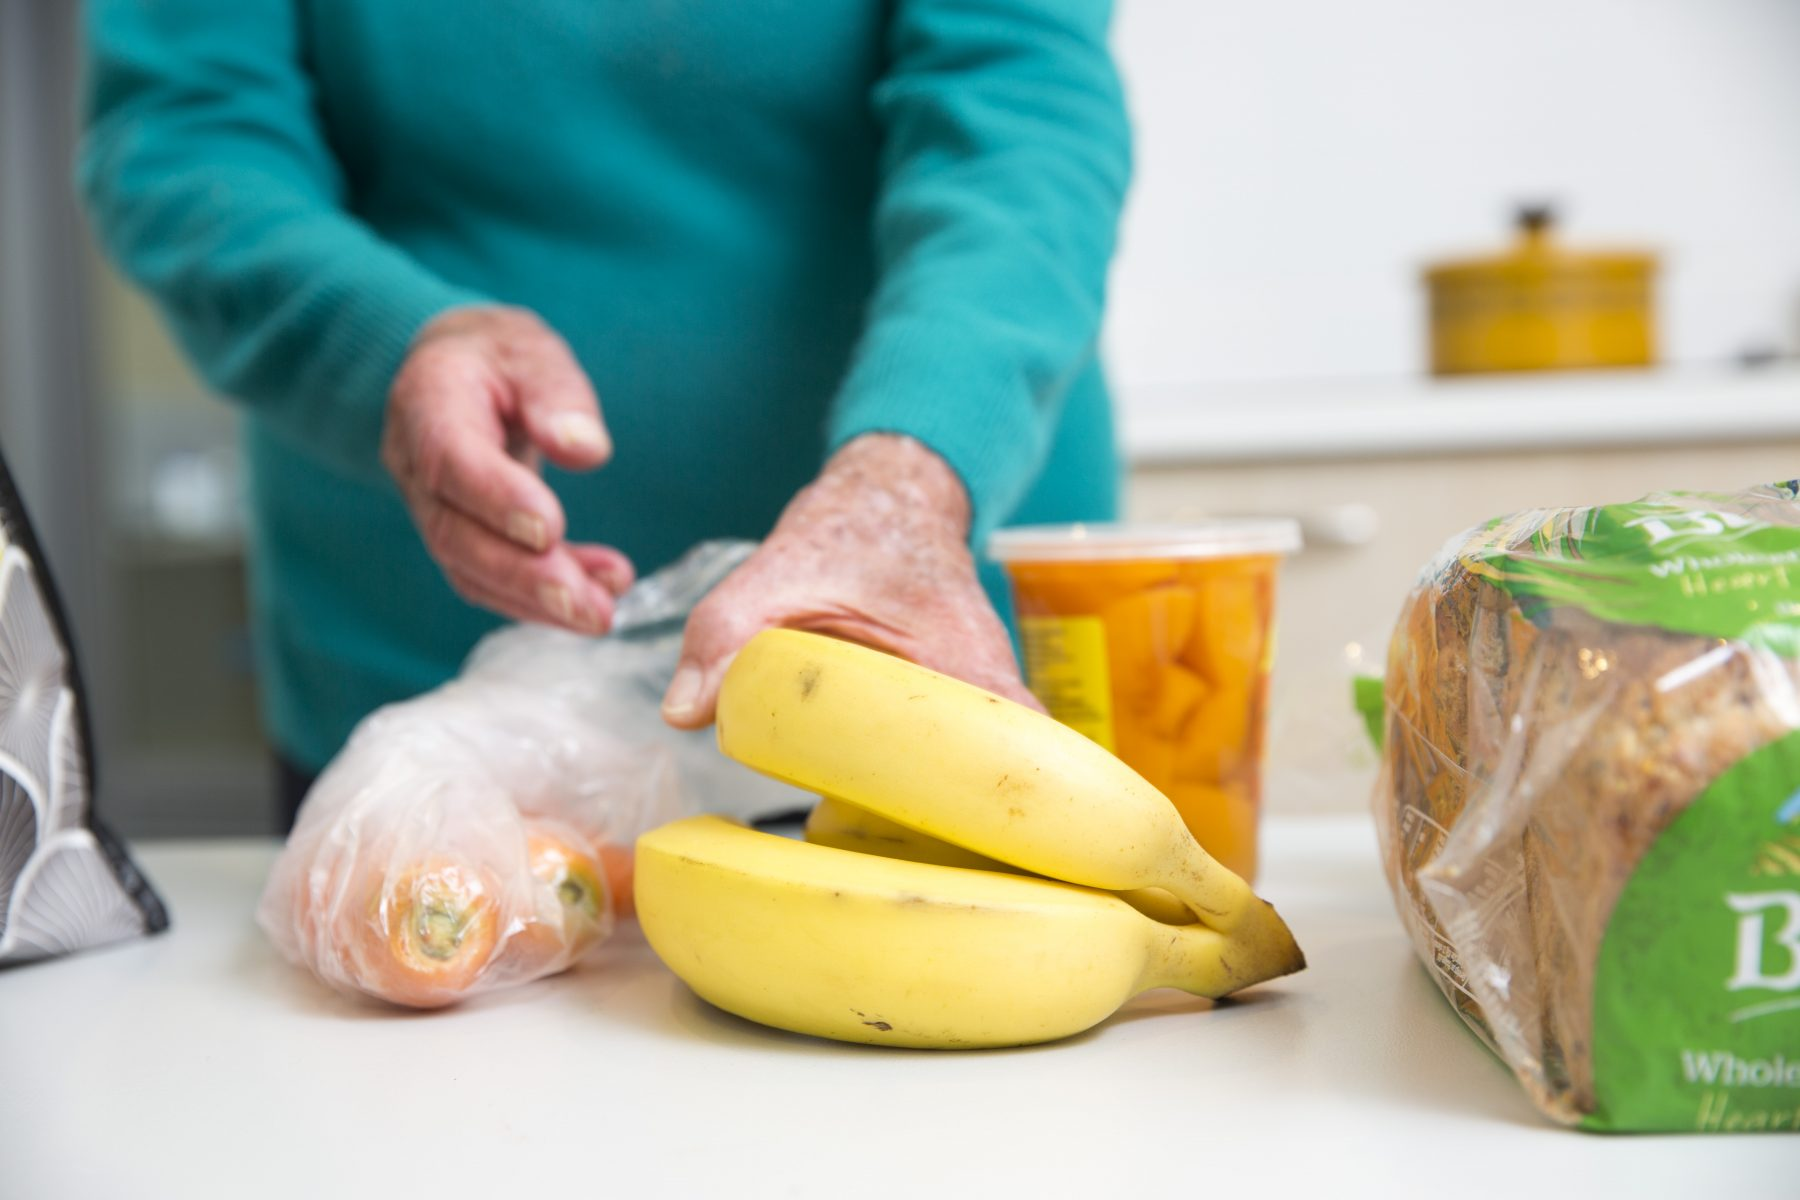 older person putting away grocery shopping